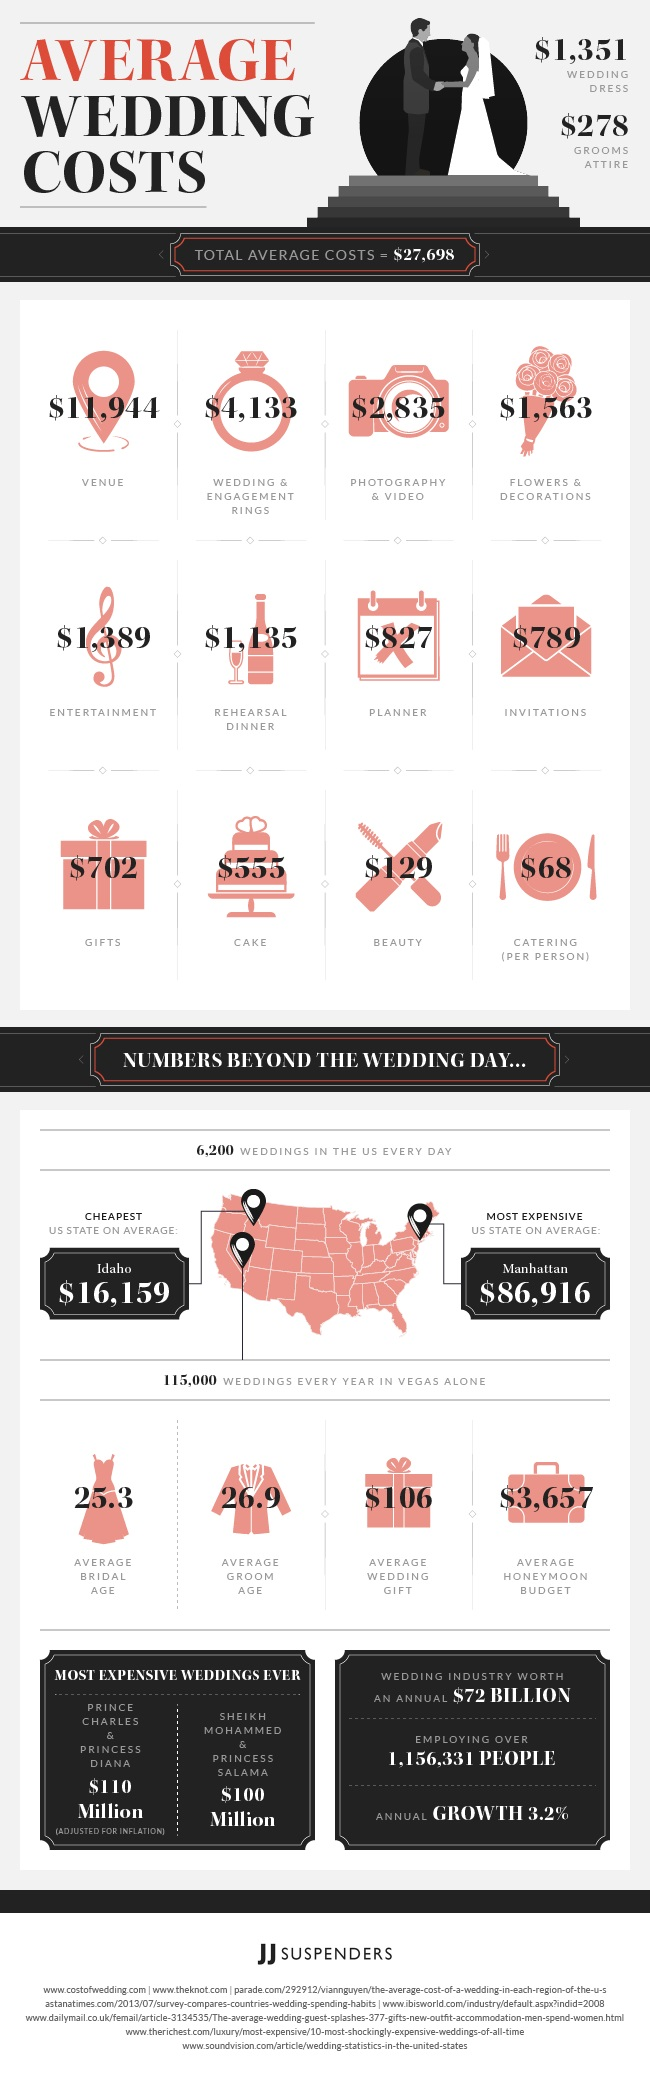 cost-of-weddings-in-2017